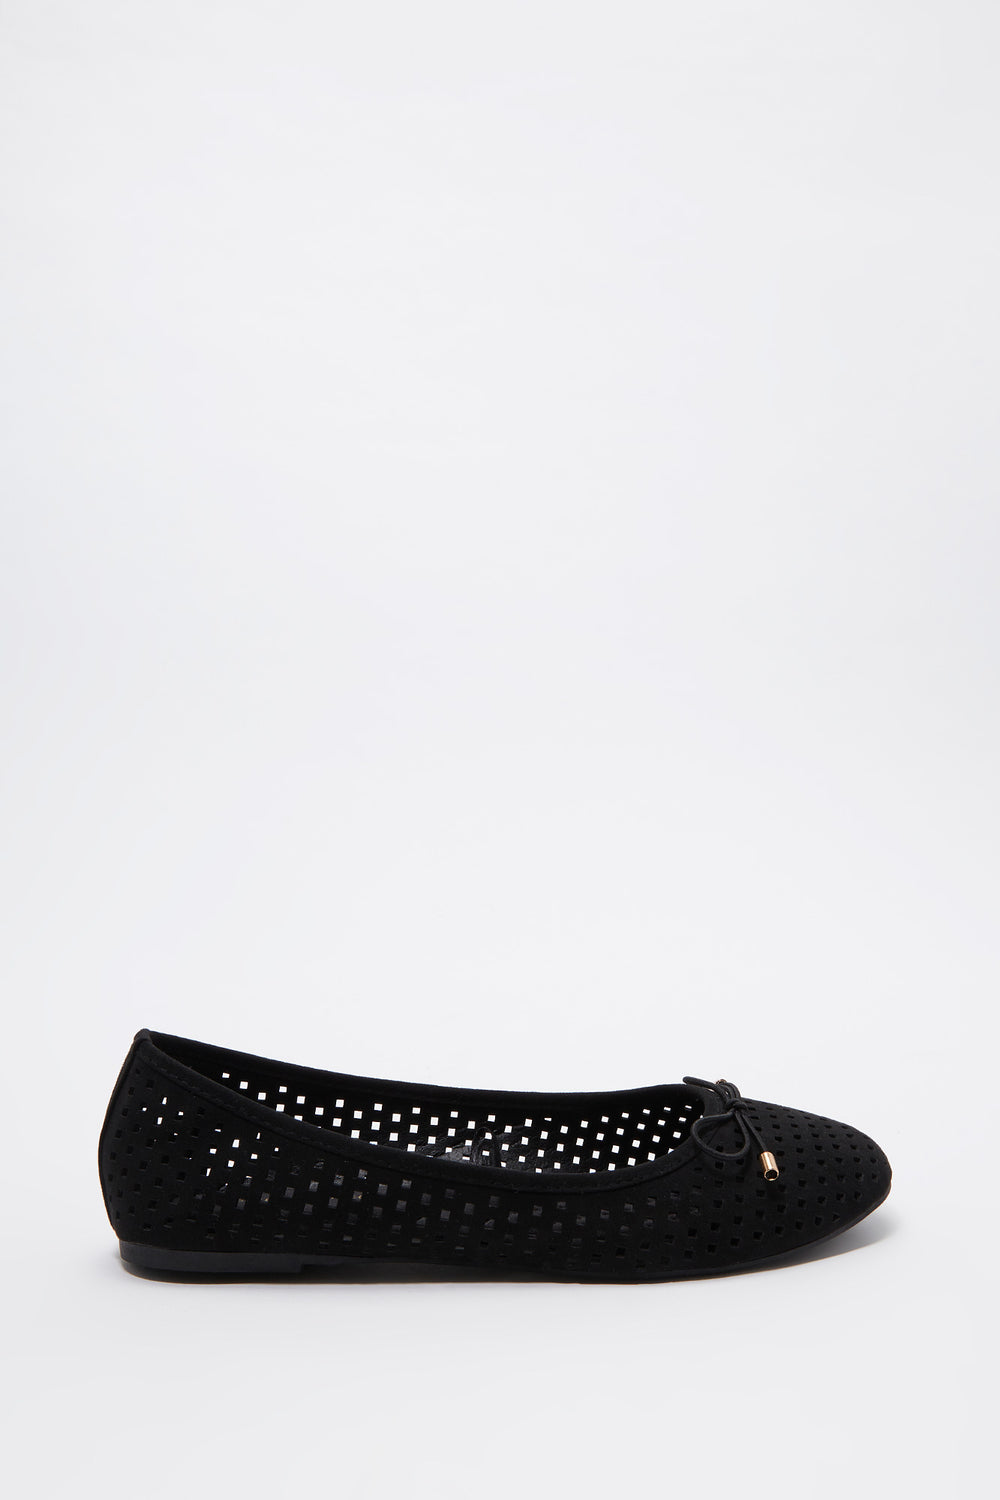 Laser Cut Out Bow Ballet Flat Black